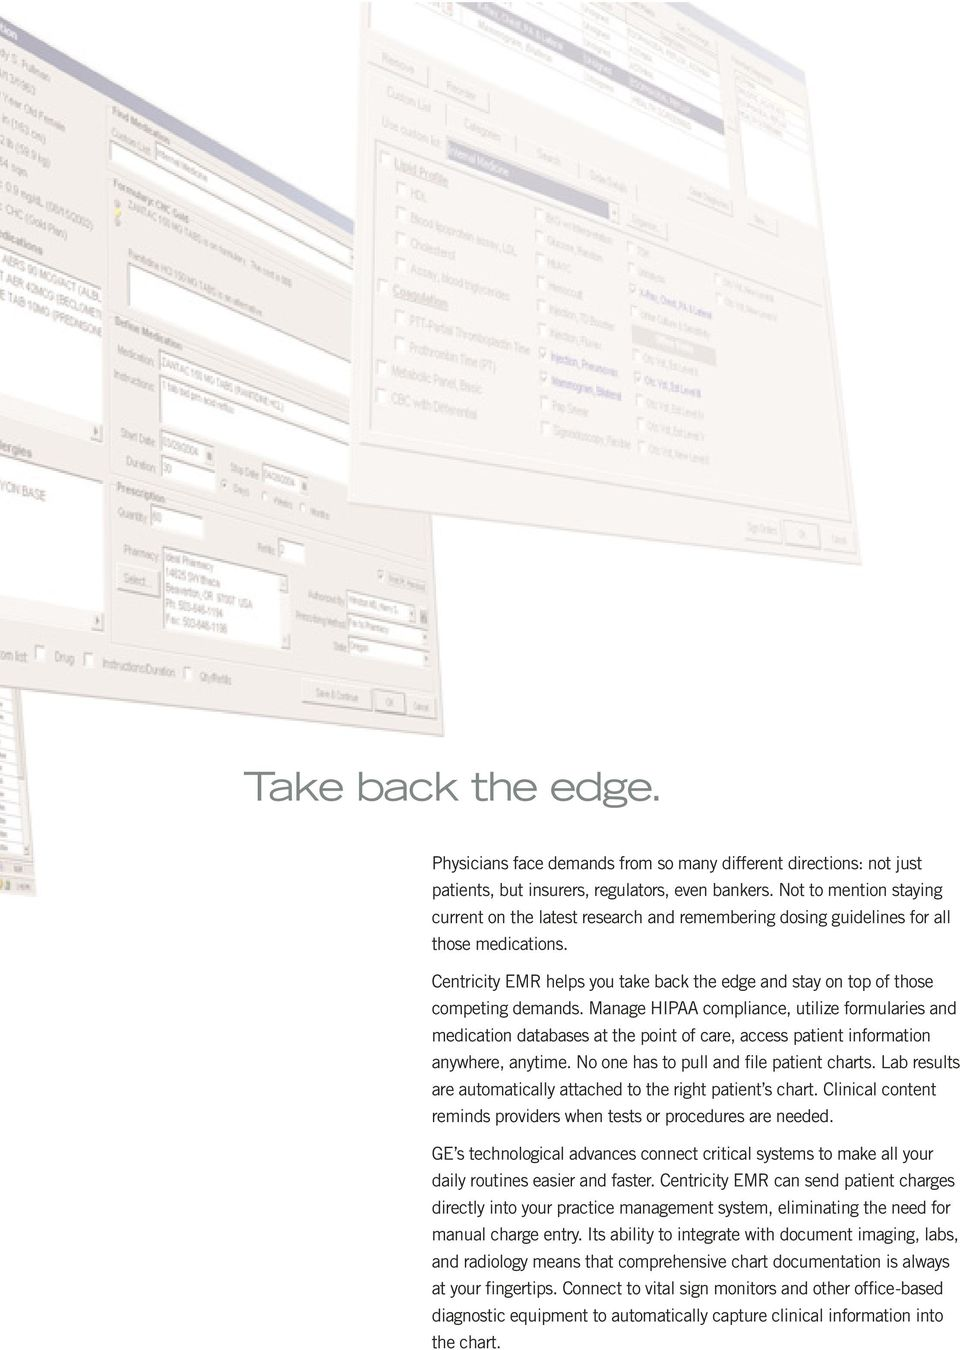 Centricity EMR helps you take back the edge and stay on top of those competing demands.